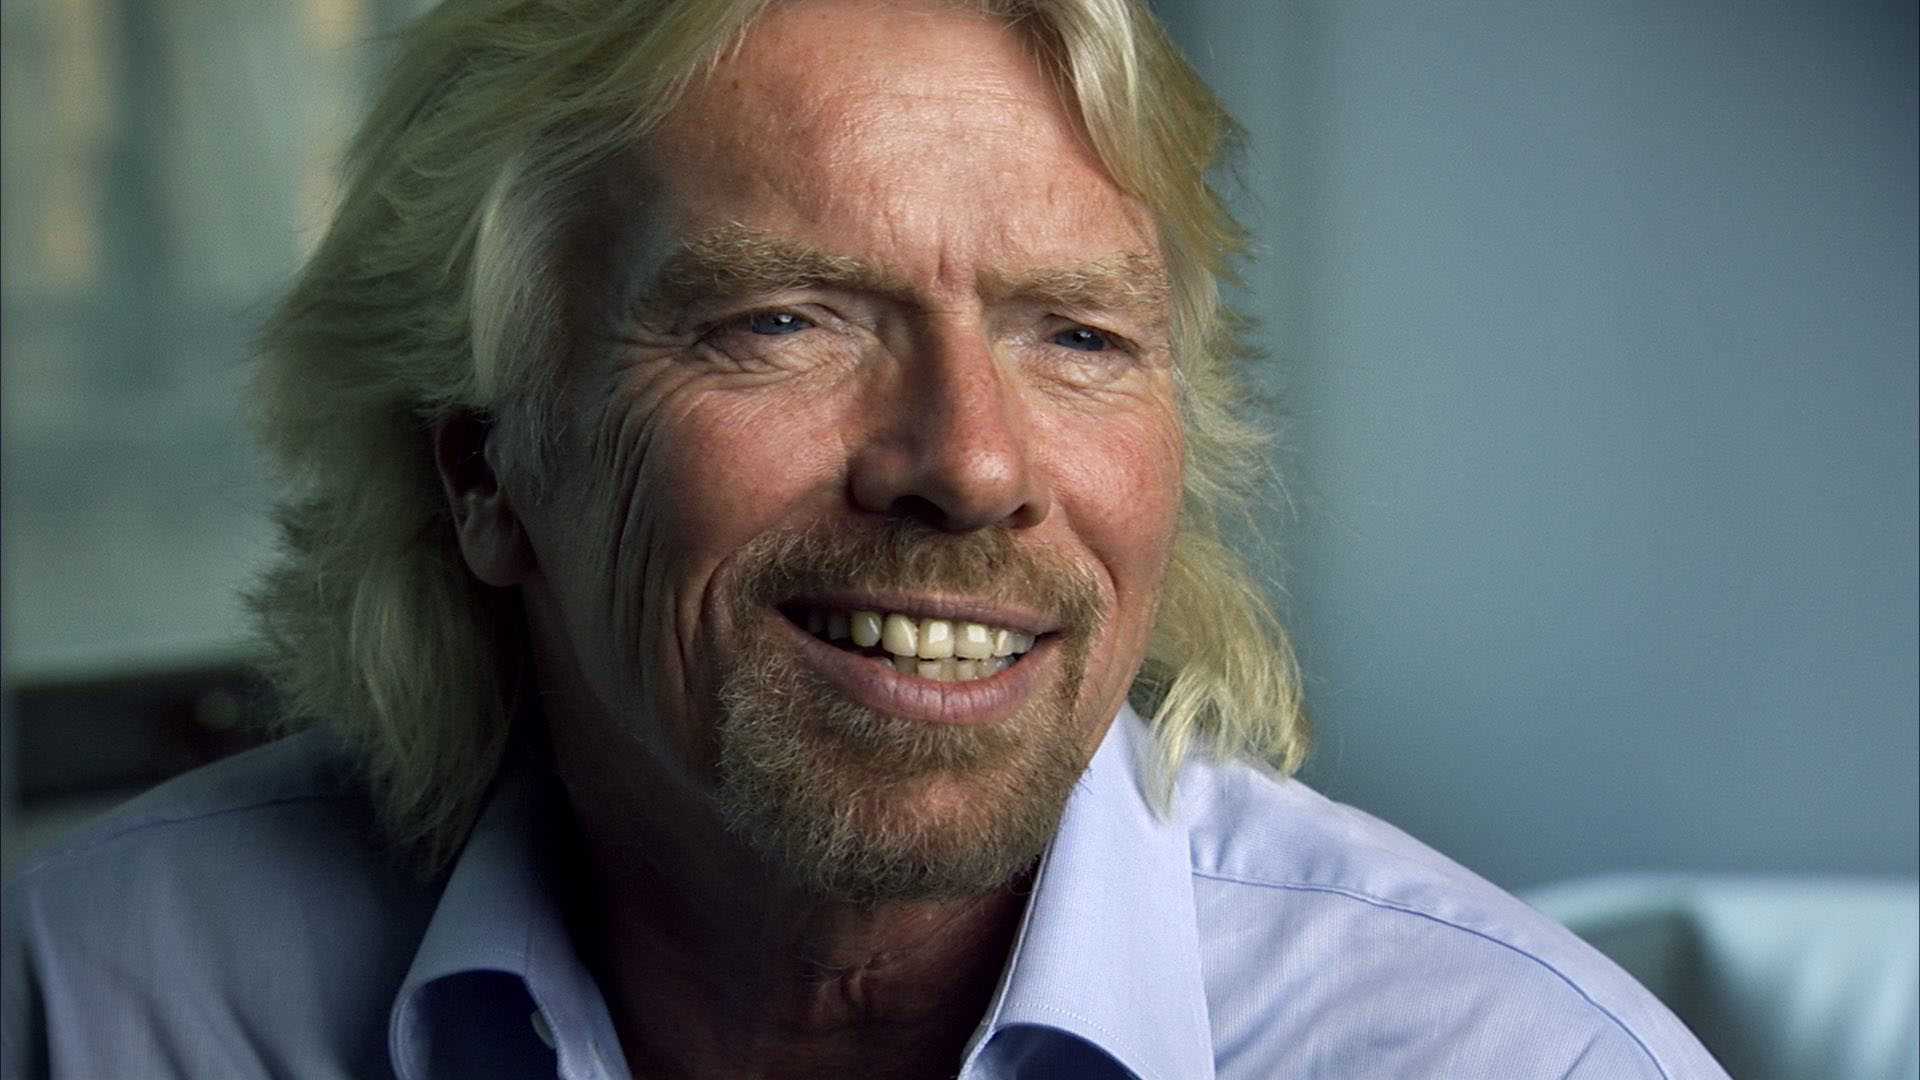 The Wild and Crazy Career Paths of 5 Self-Made Billionaires | DayLoL.com